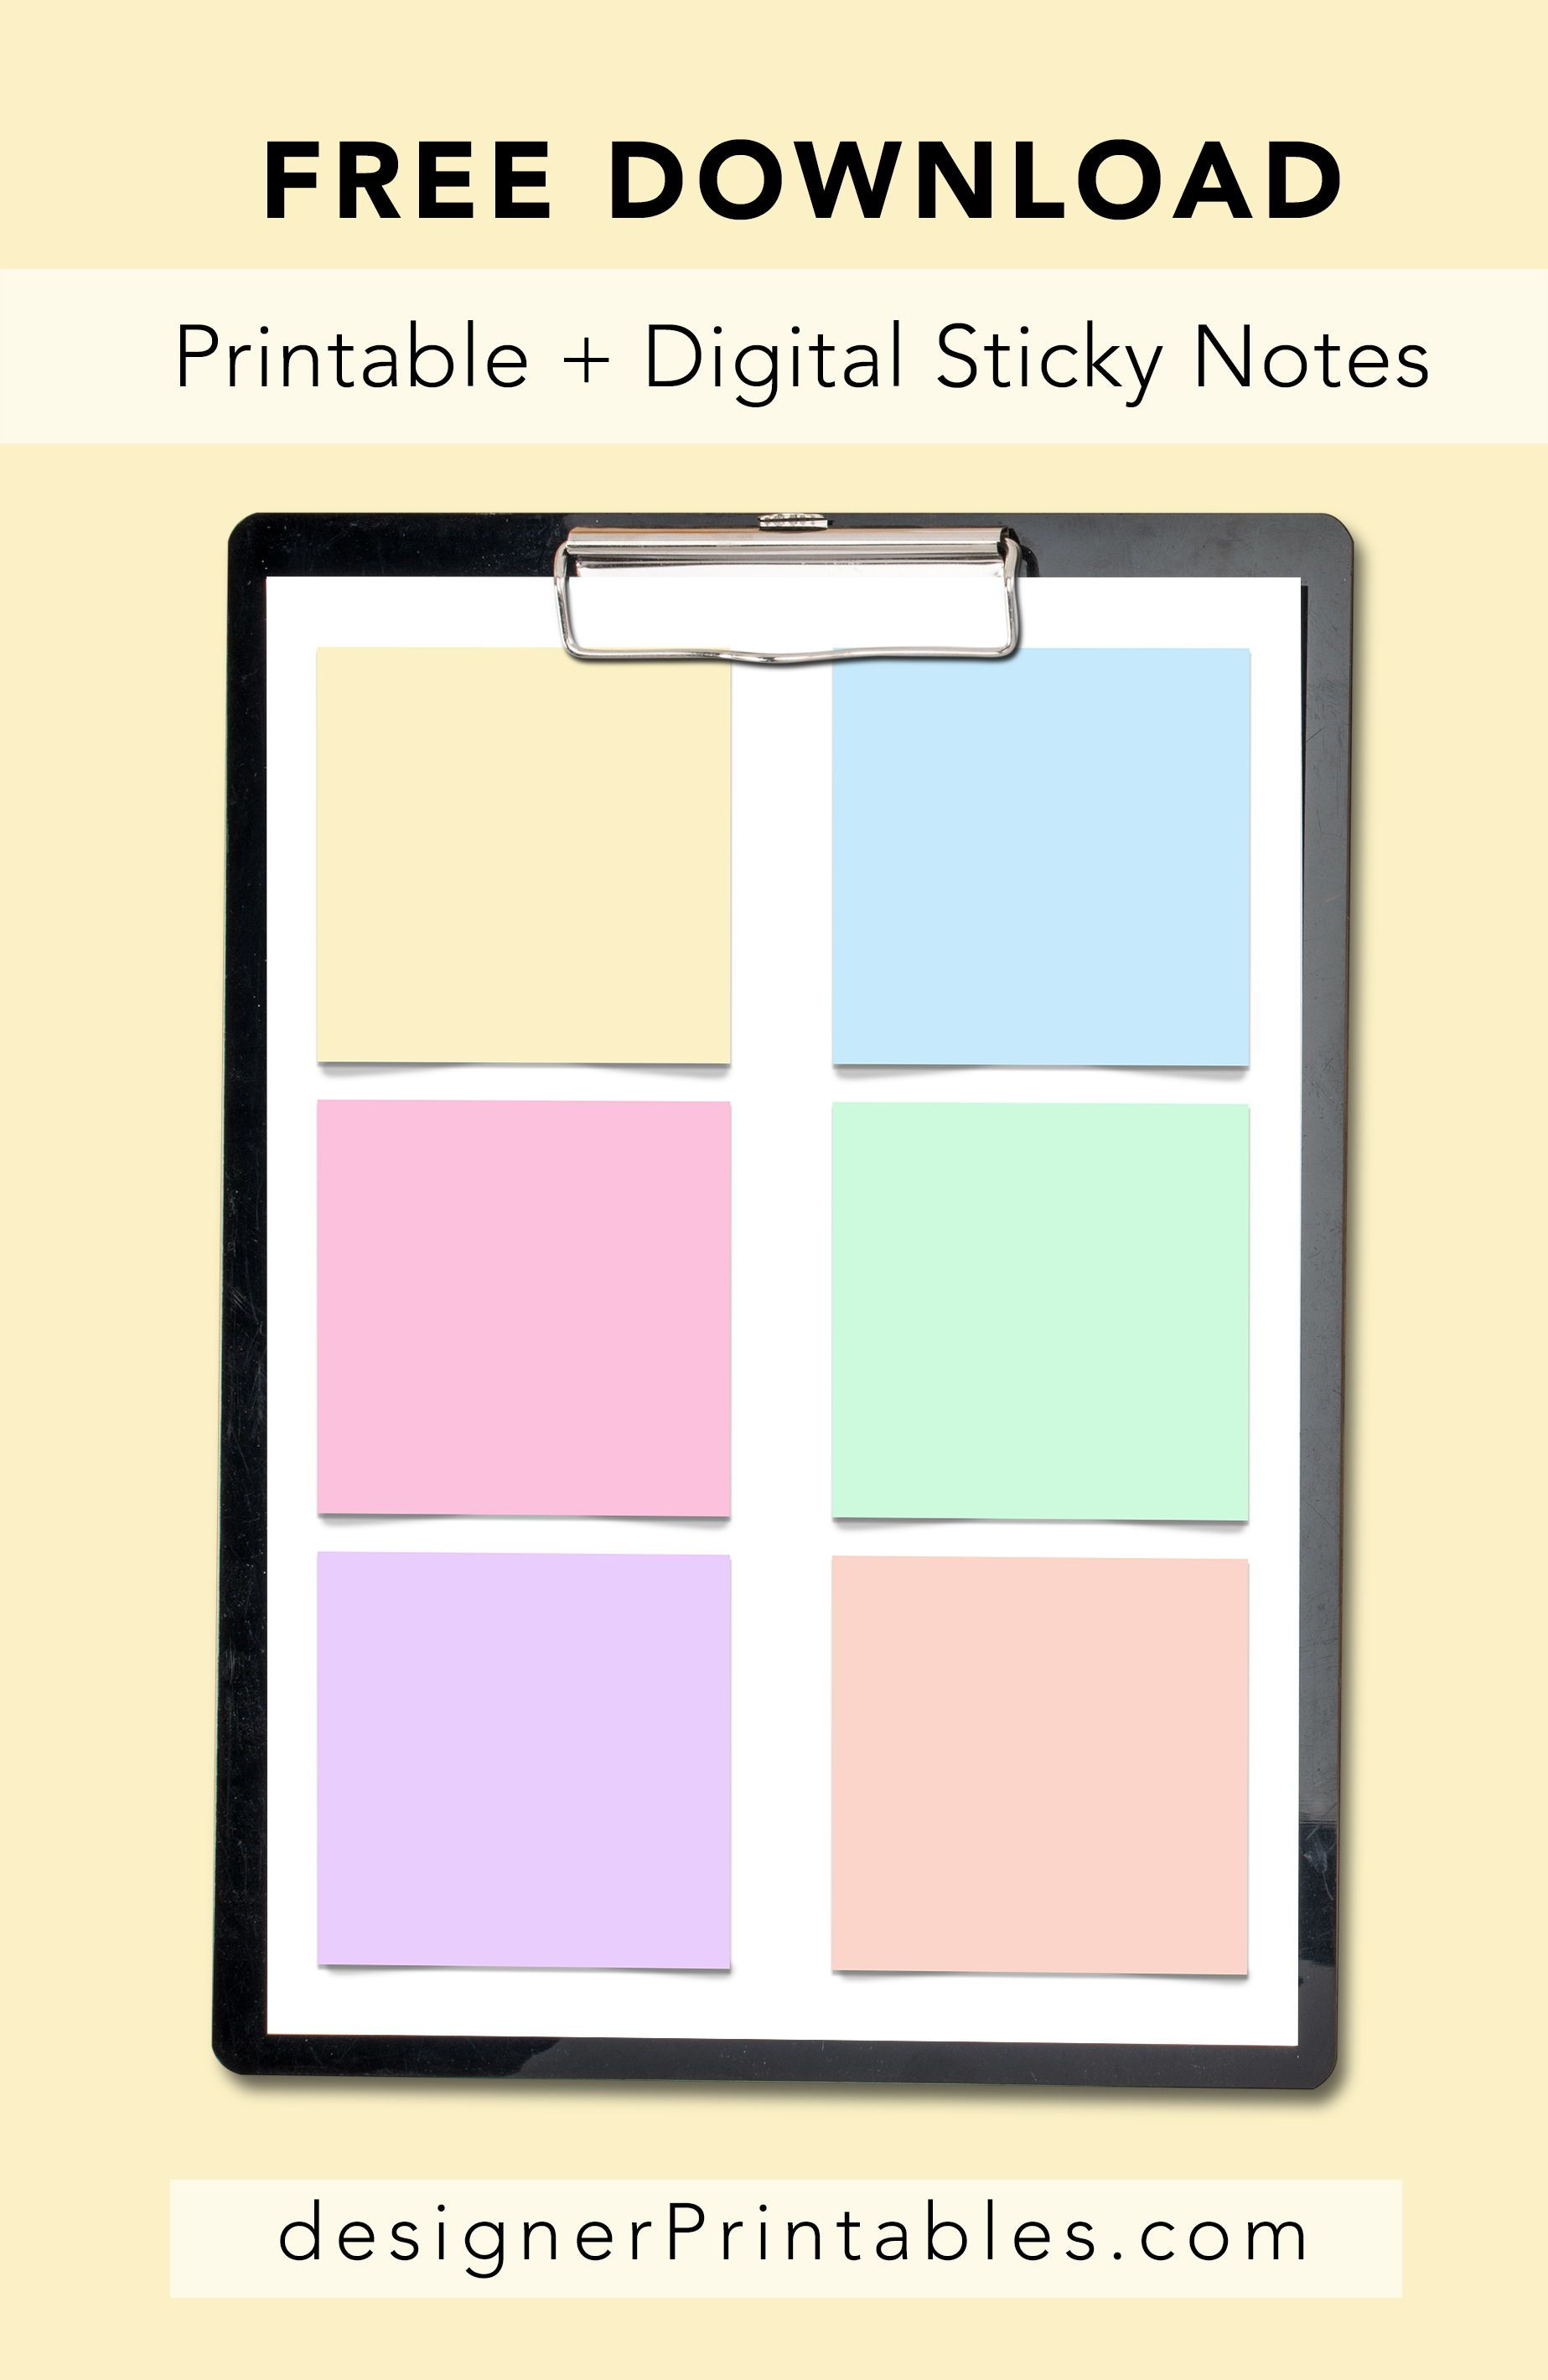 Buy Sticky stylish notes download picture trends